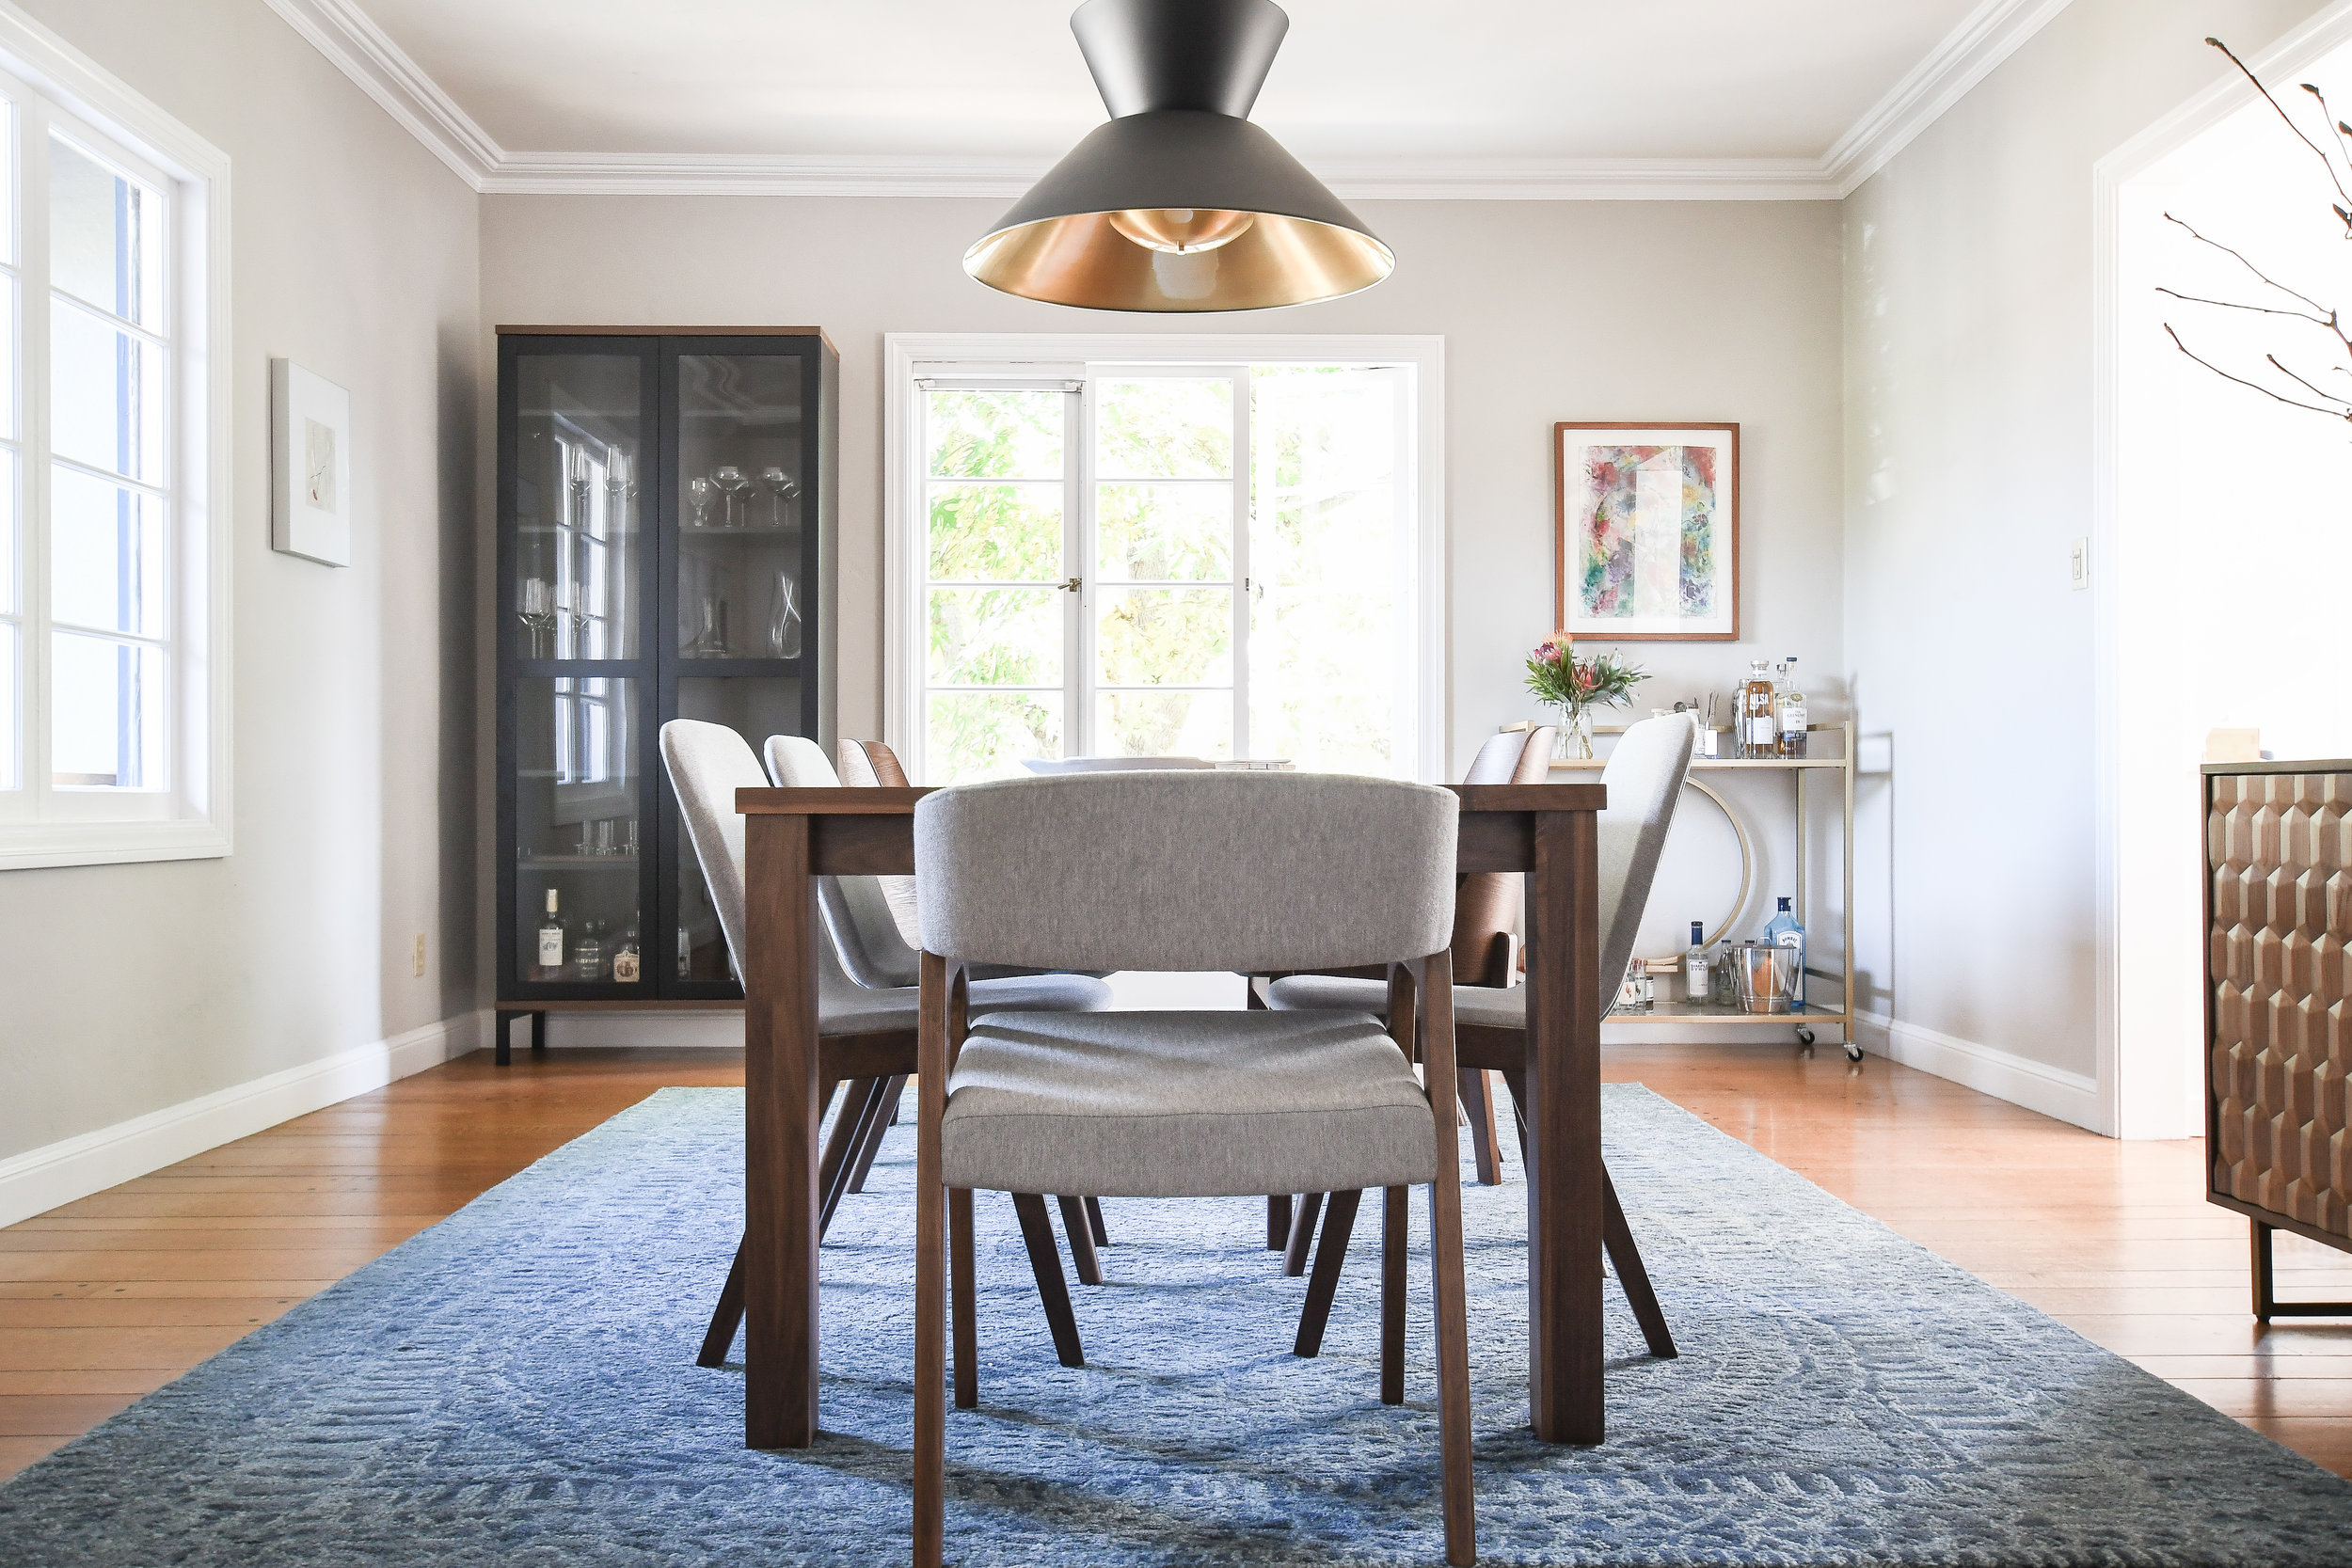 Angela Grace Design - Carlston Dining Room - San Francisco and SF Bay Area Interior Designer, Decorator